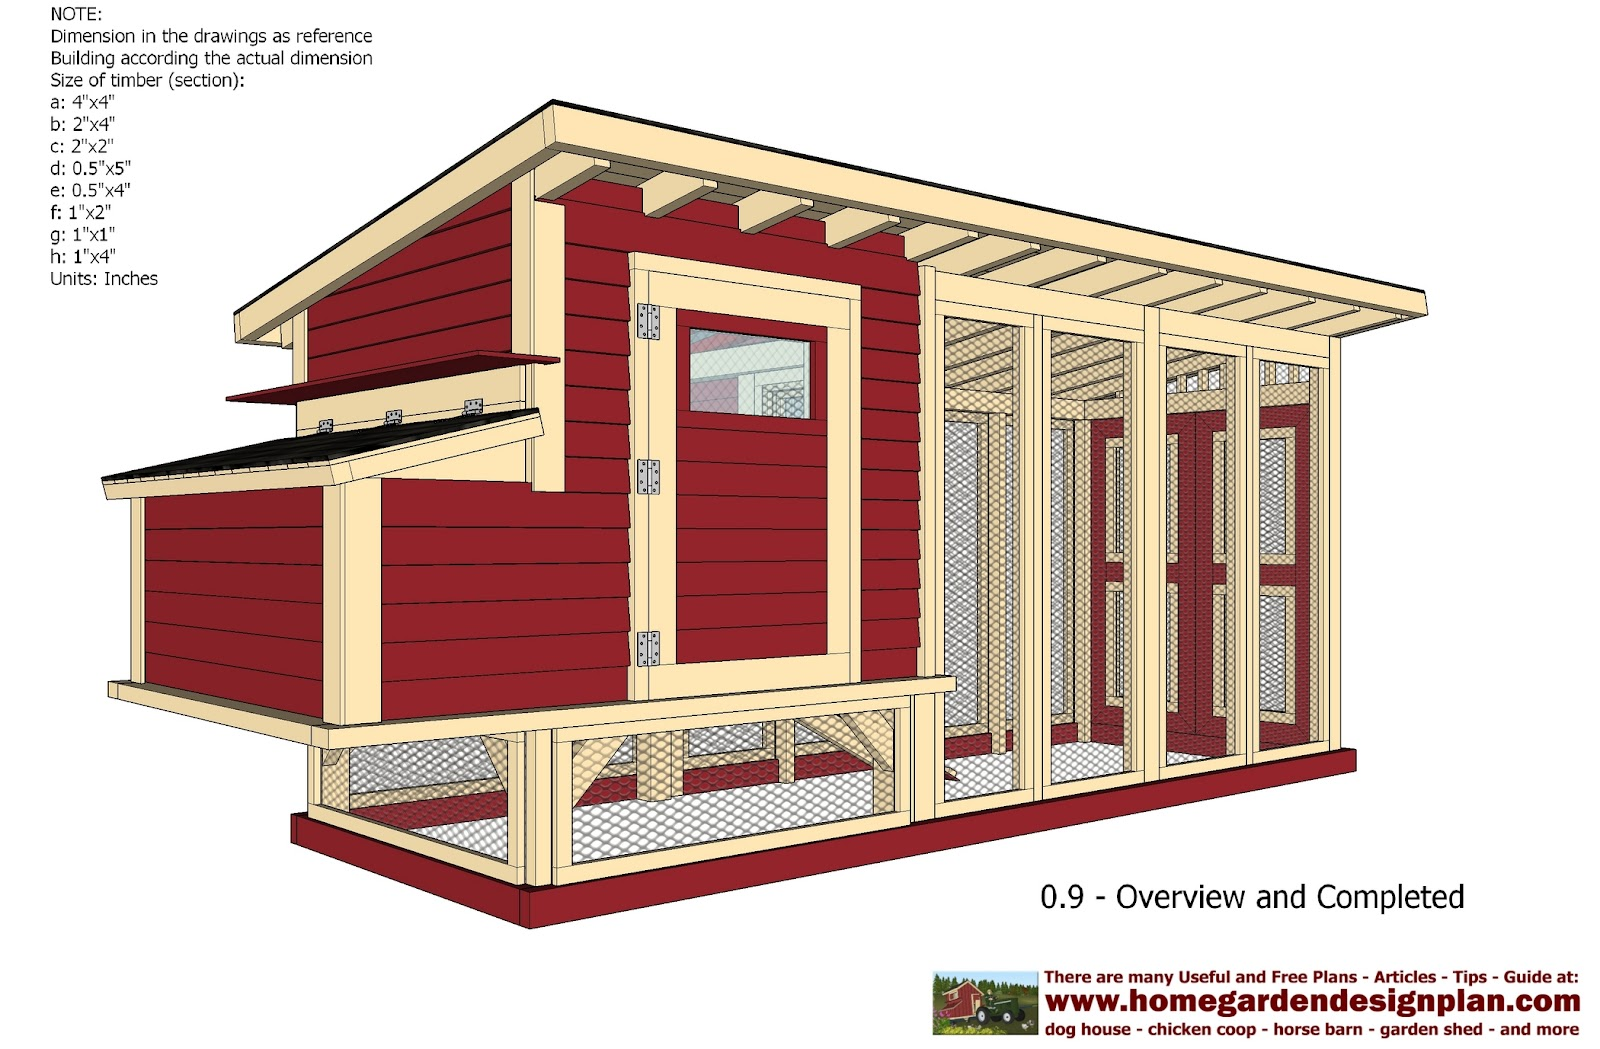 home garden plans  M   Chicken Coop Plans Construction    home garden plans  M   Chicken Coop Plans Construction   Chicken Coop Design   How To Build A Chicken Coop